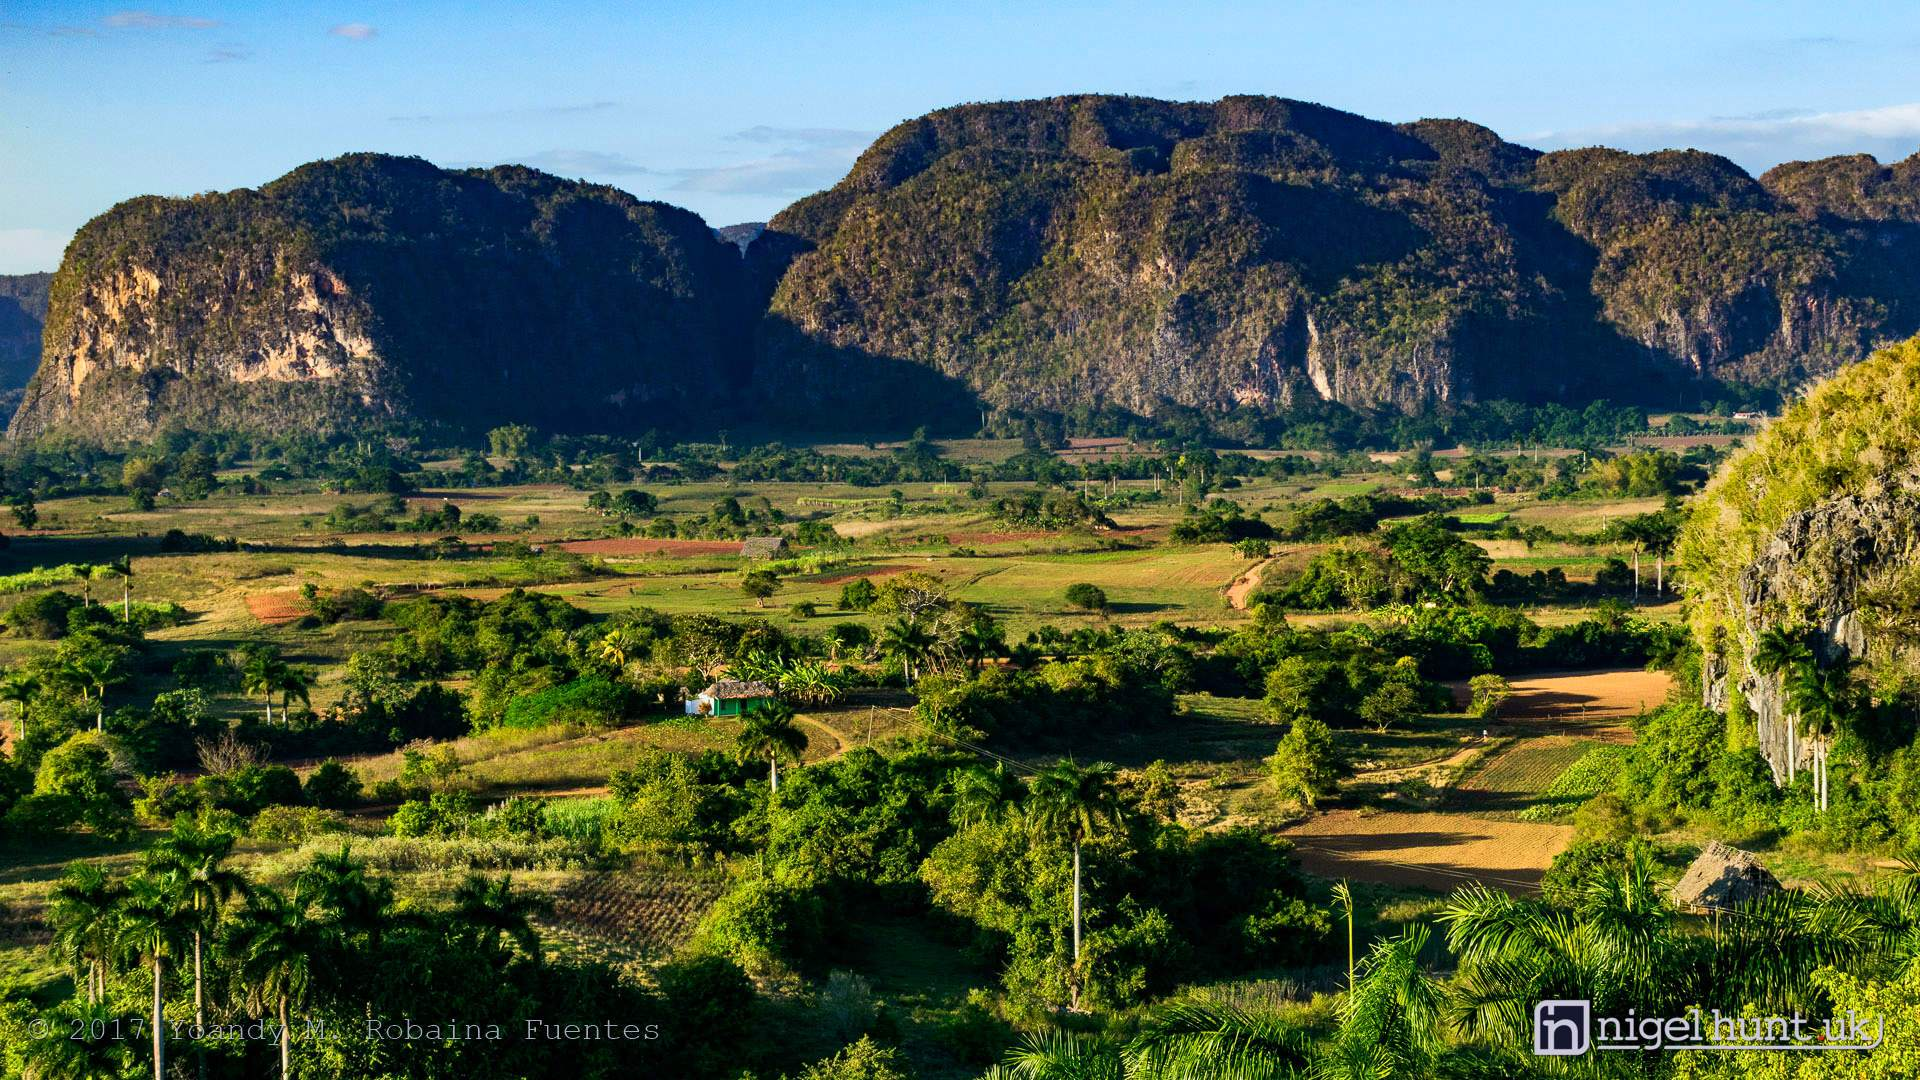 The Valley of Vinales with its mogotes